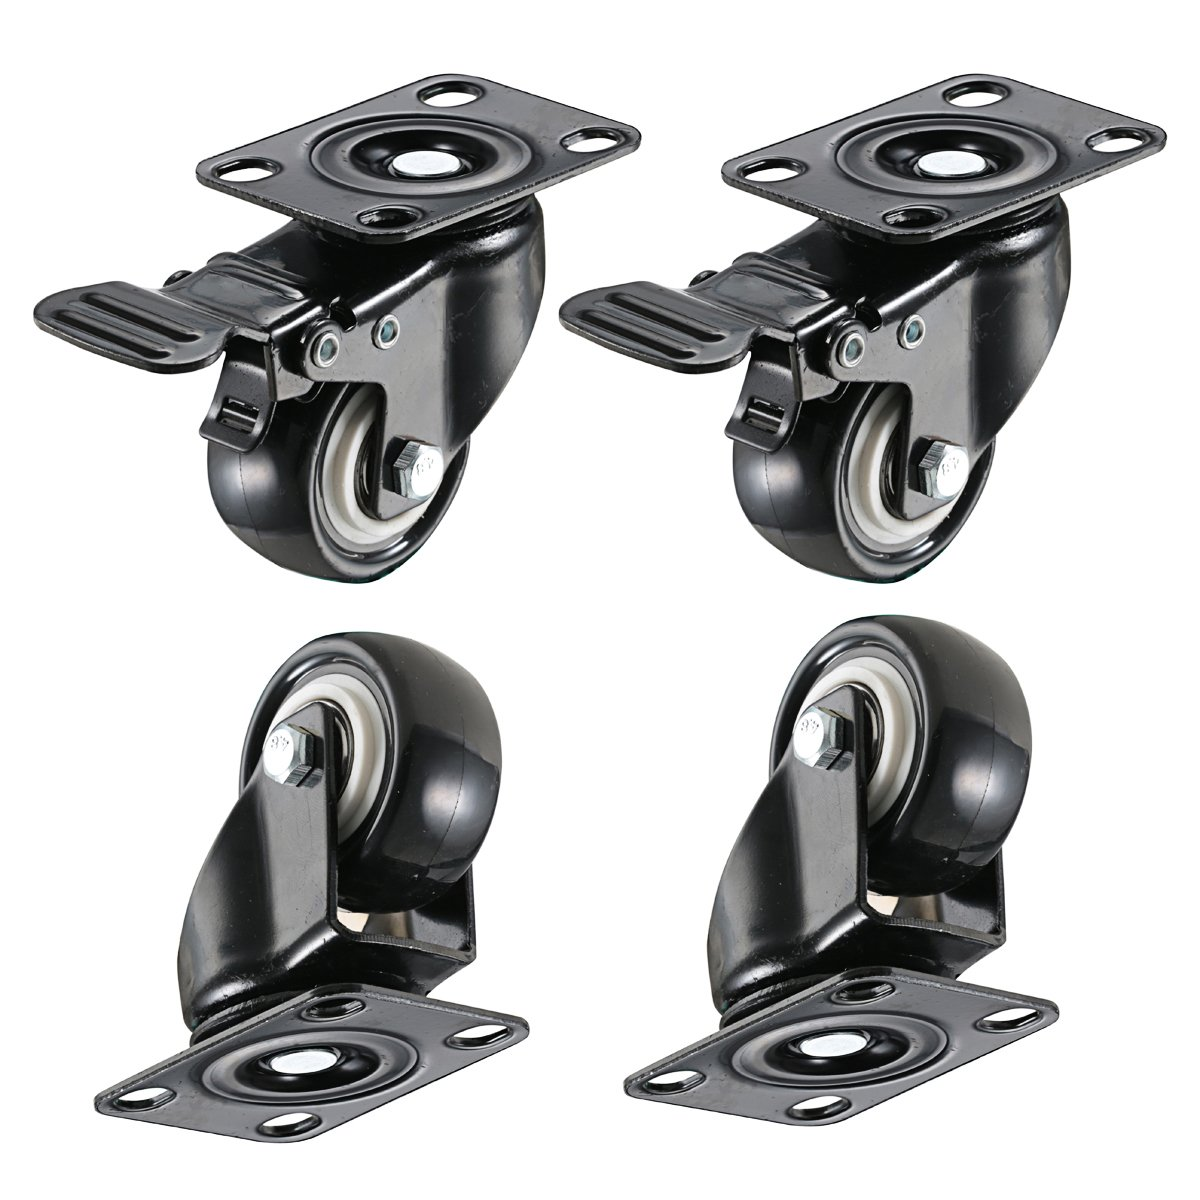 "bayite 4 Pack 2"" Heavy Duty Caster Wheels Polyurethane PU Swivel Casters with 360 Degree Top Plate 220lb Total Capacity for Set of 4 (2 with Brakes& 2 without) Black"